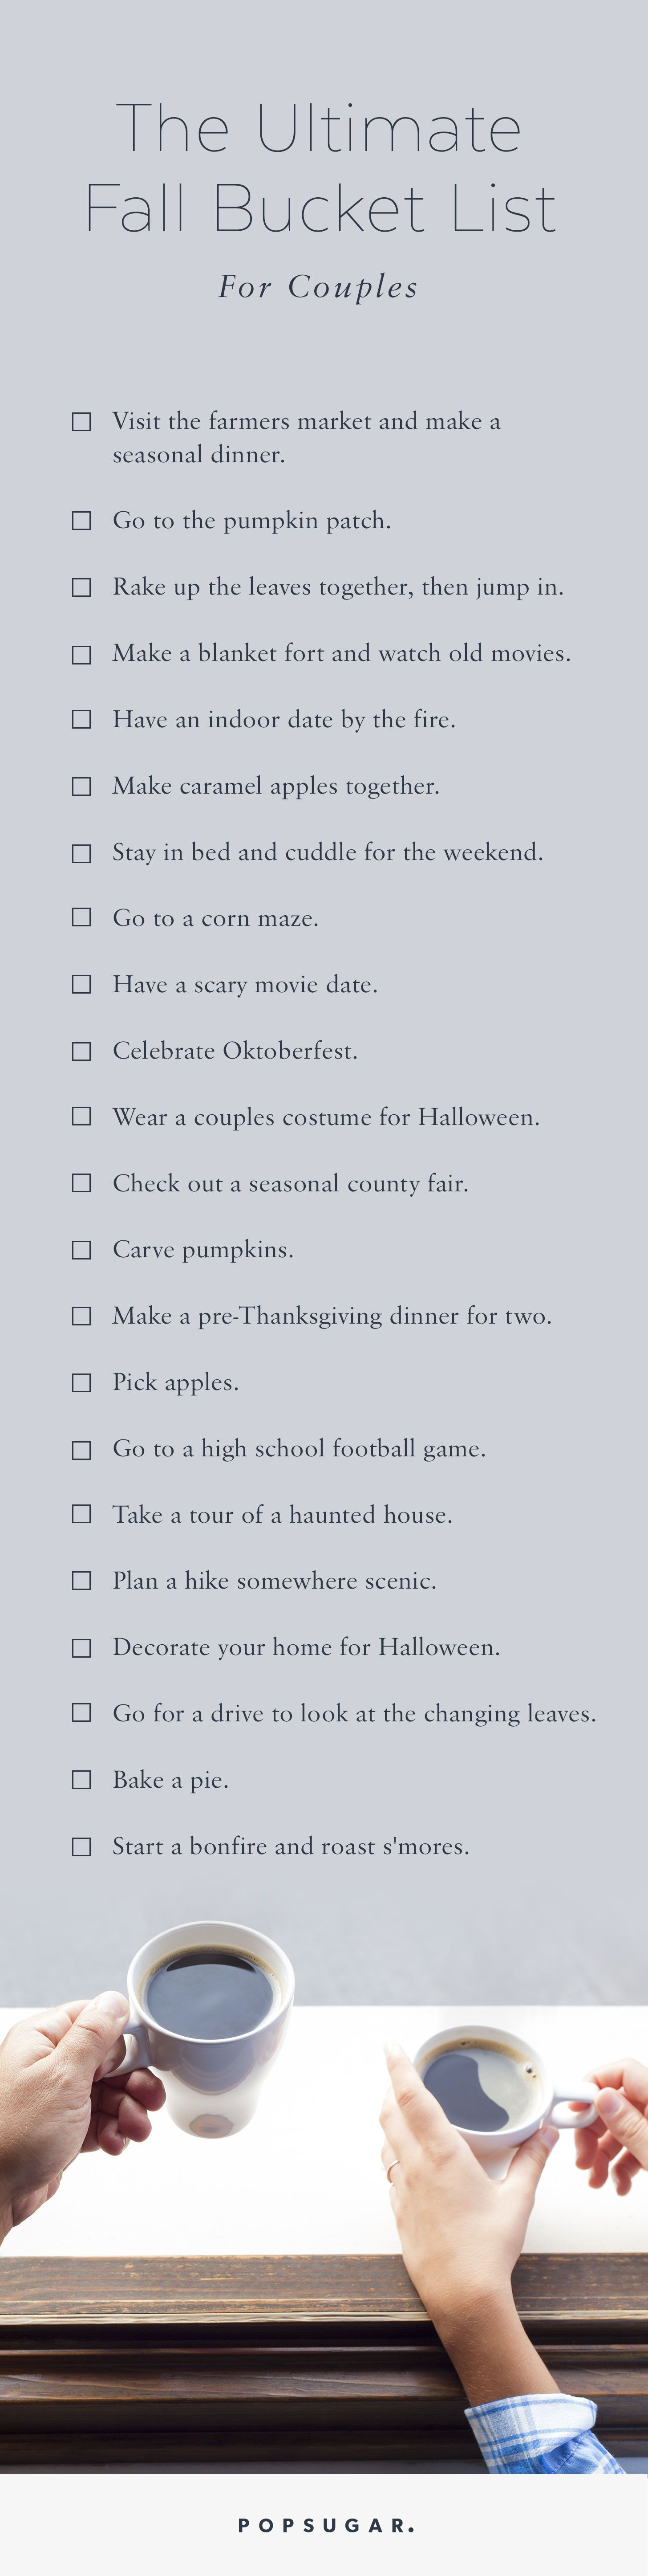 the ultimate fall couples bucket list activities holidays and autumn